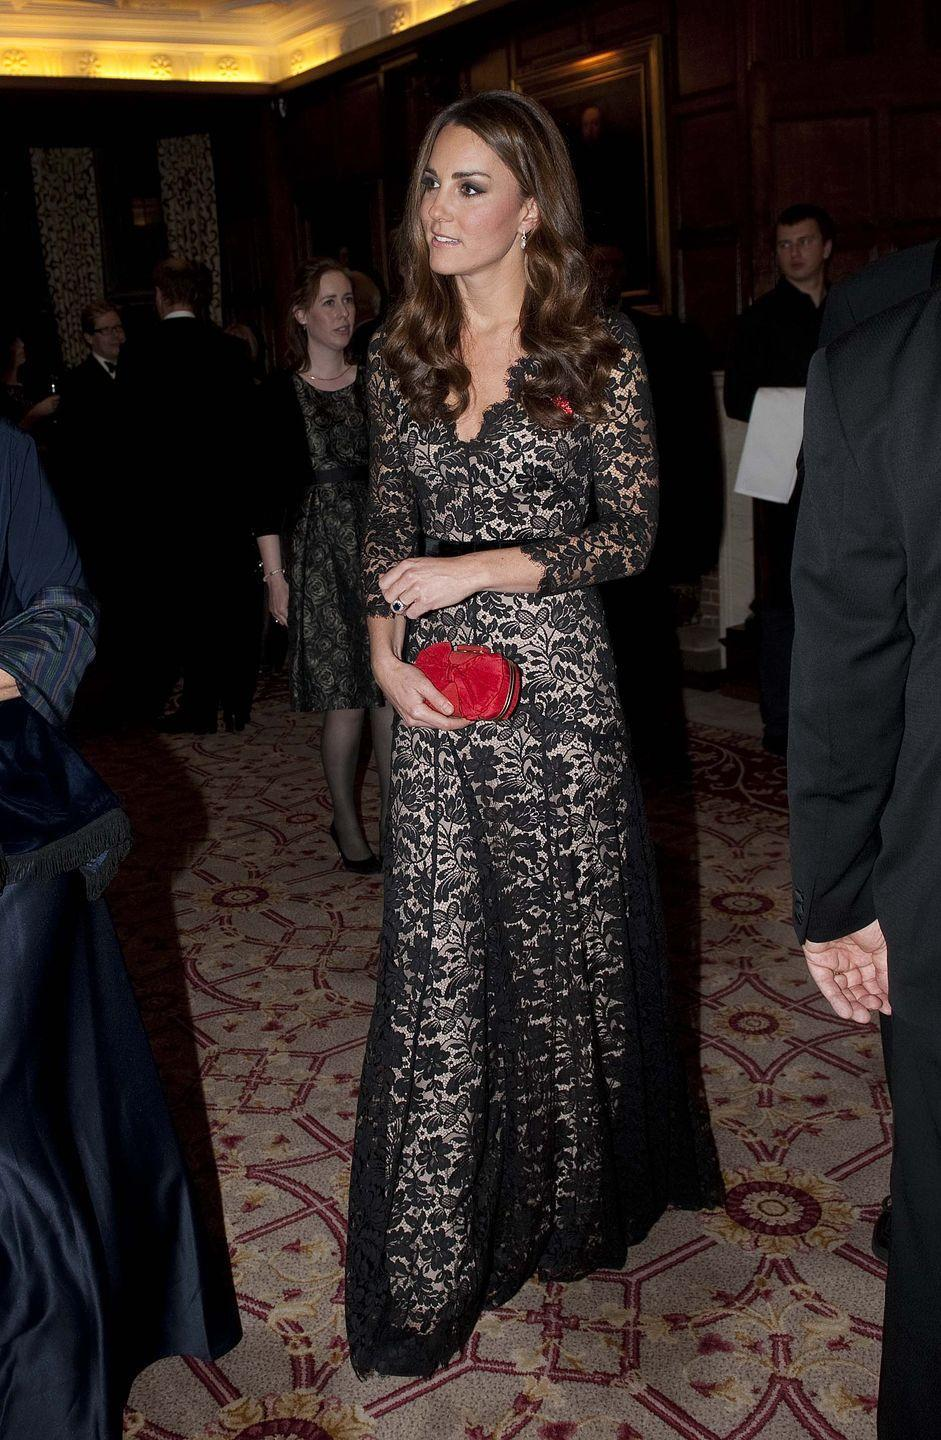 <p>She wore it a second time to grace a 600th anniversary reception and dinner for St. Andrews in London. </p>